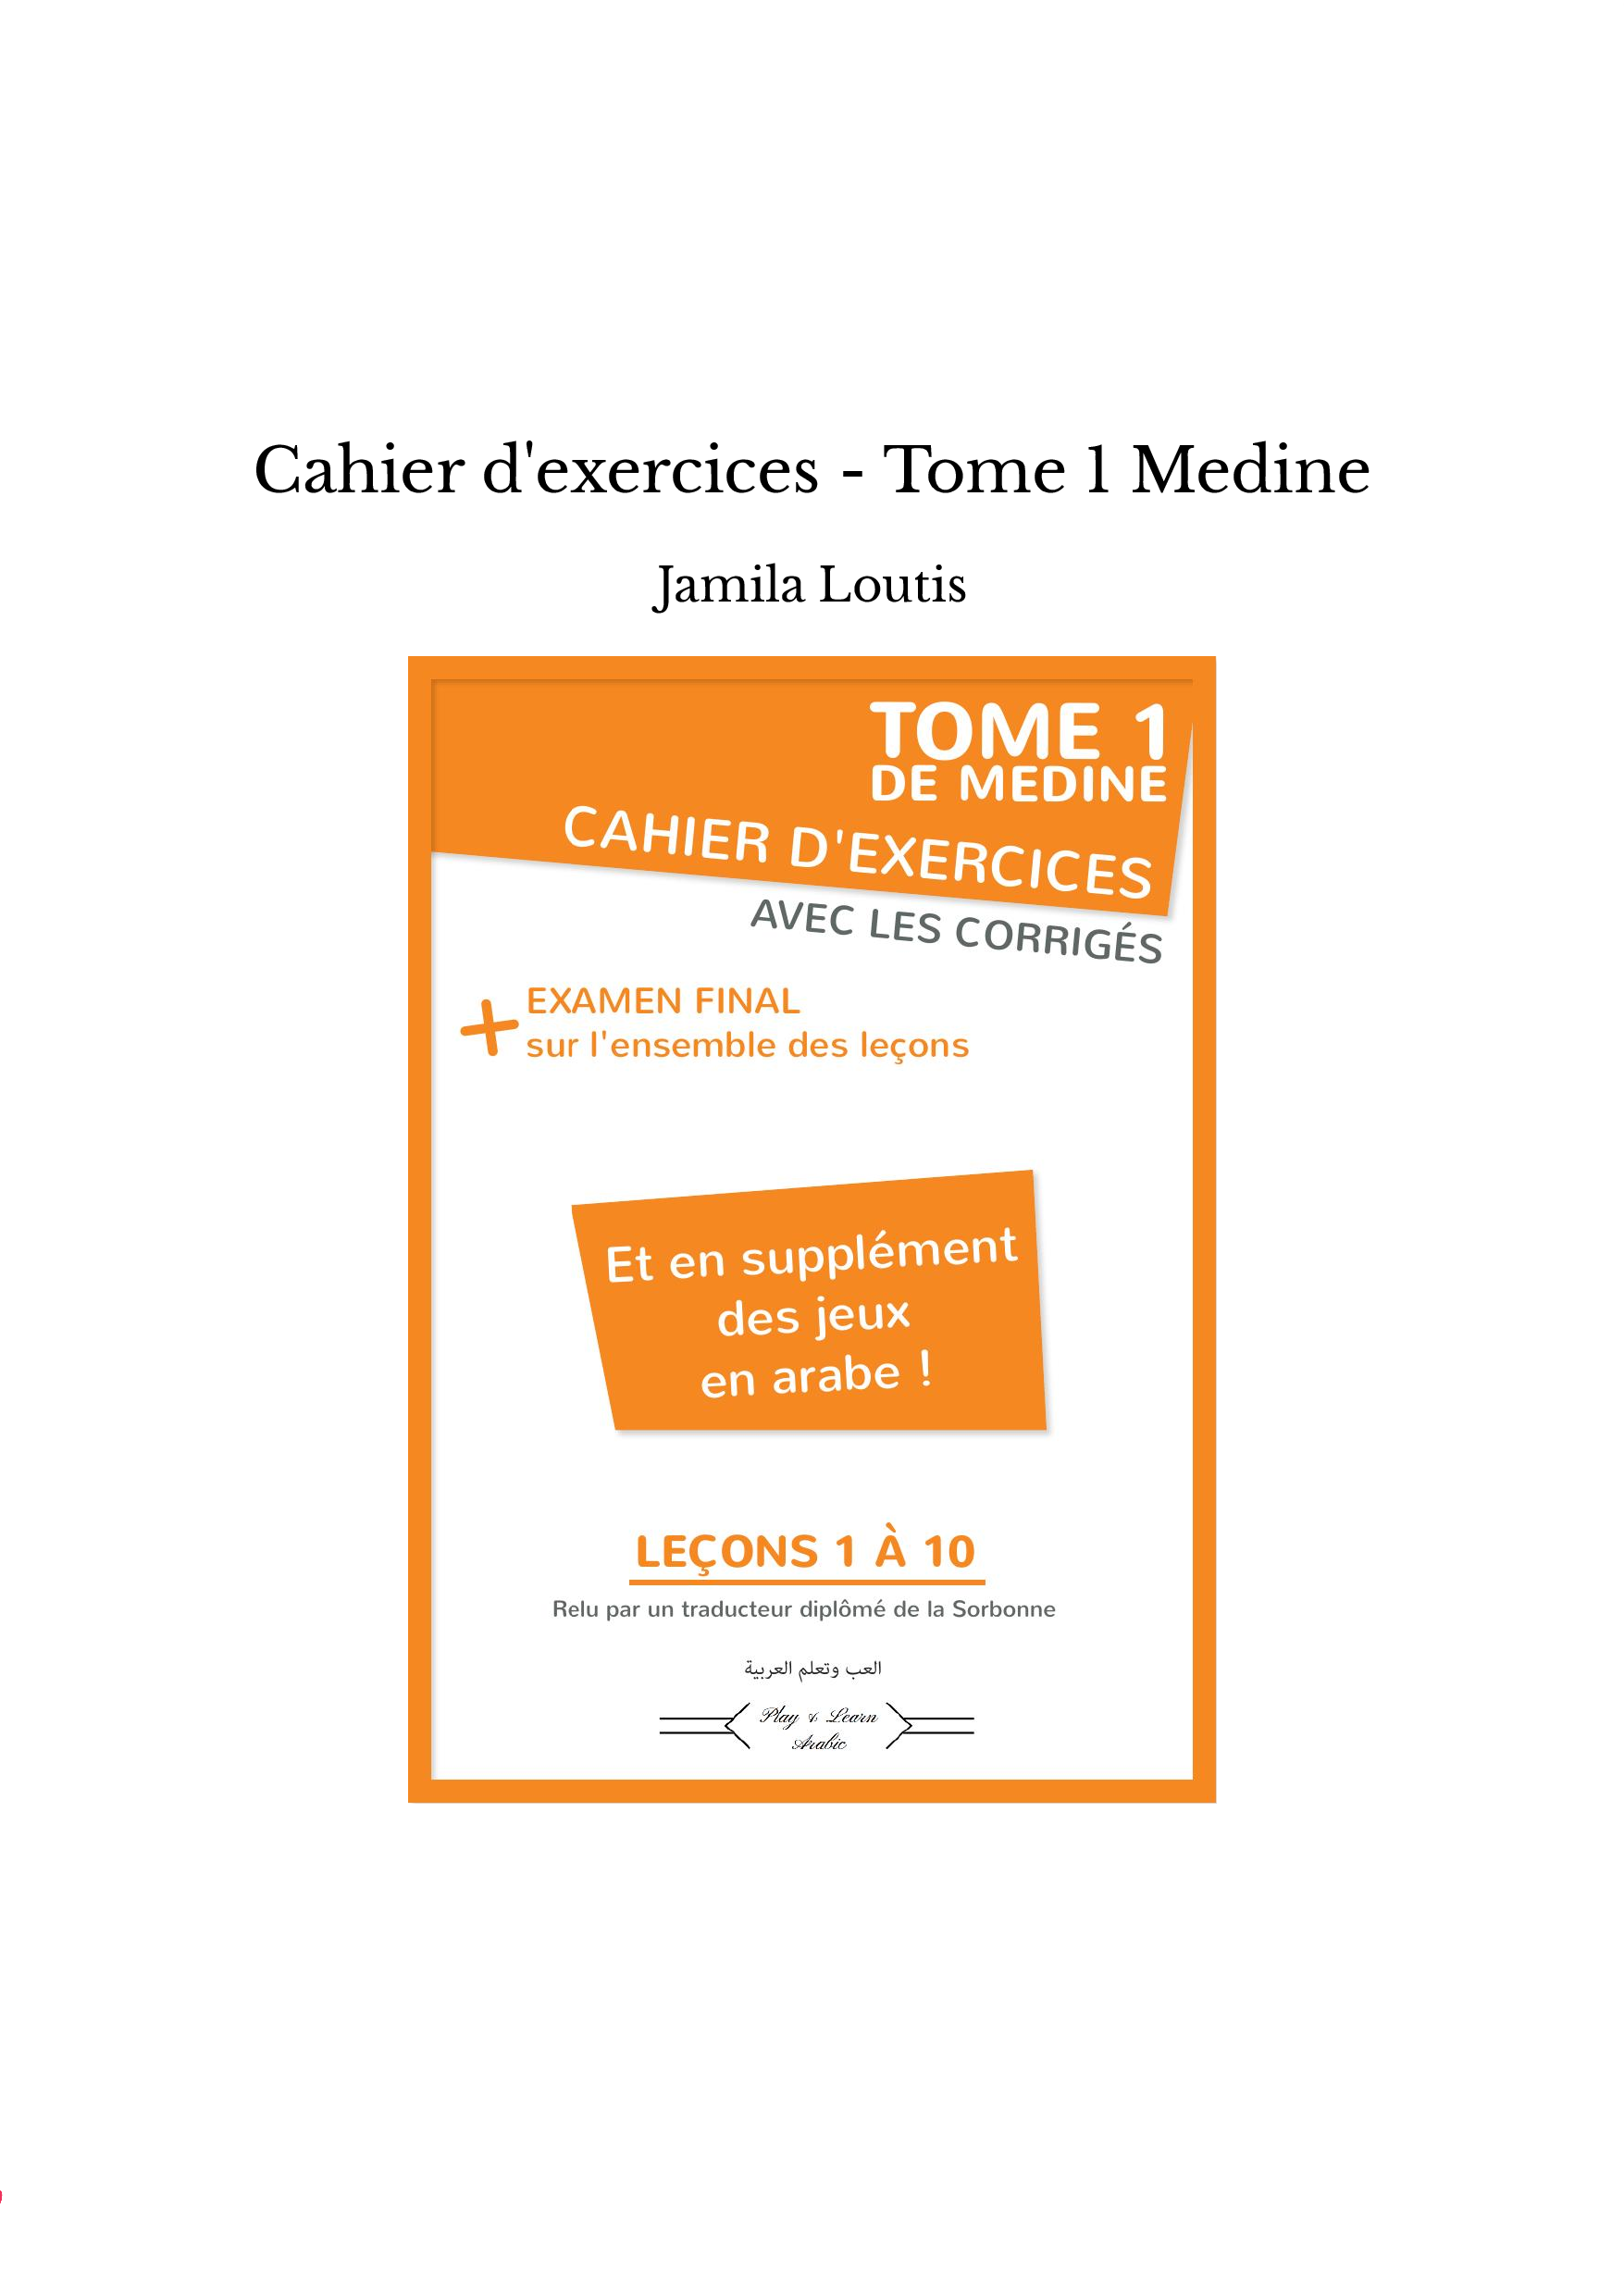 Cahier d'exercices - Tome 1 Medine